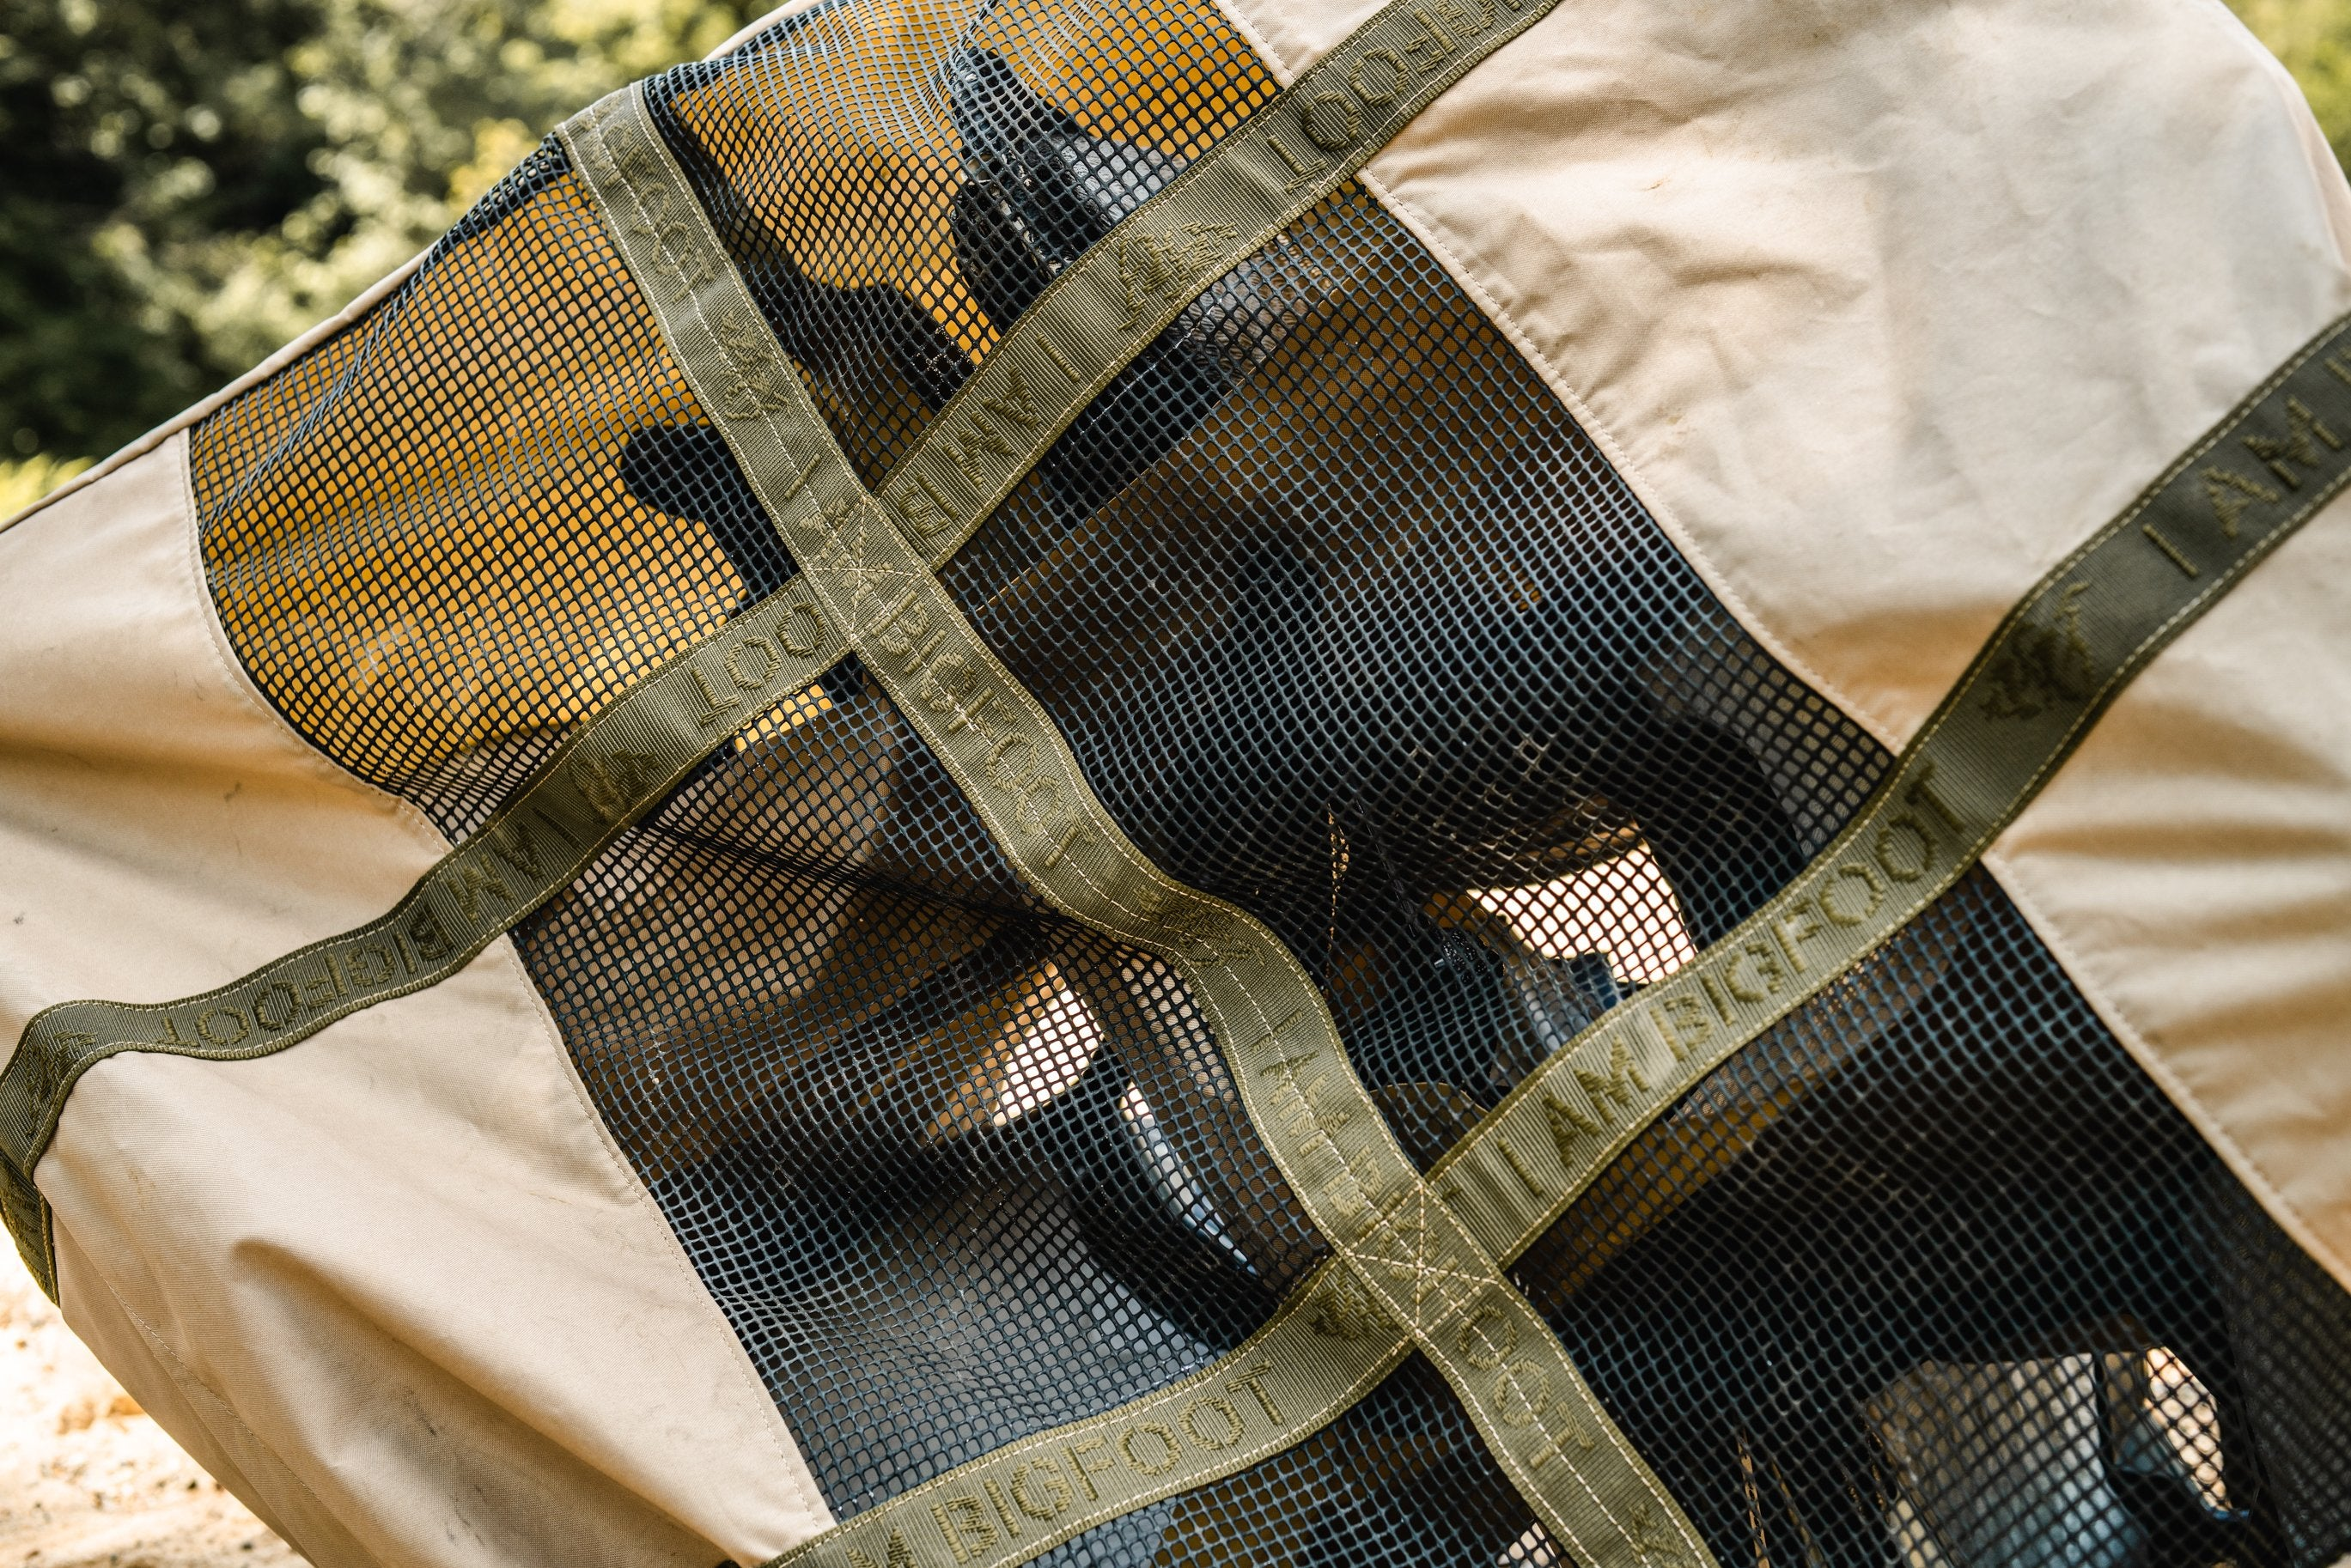 B2™ 6 Field 6-Slot Decoy Bag Bottom Detail